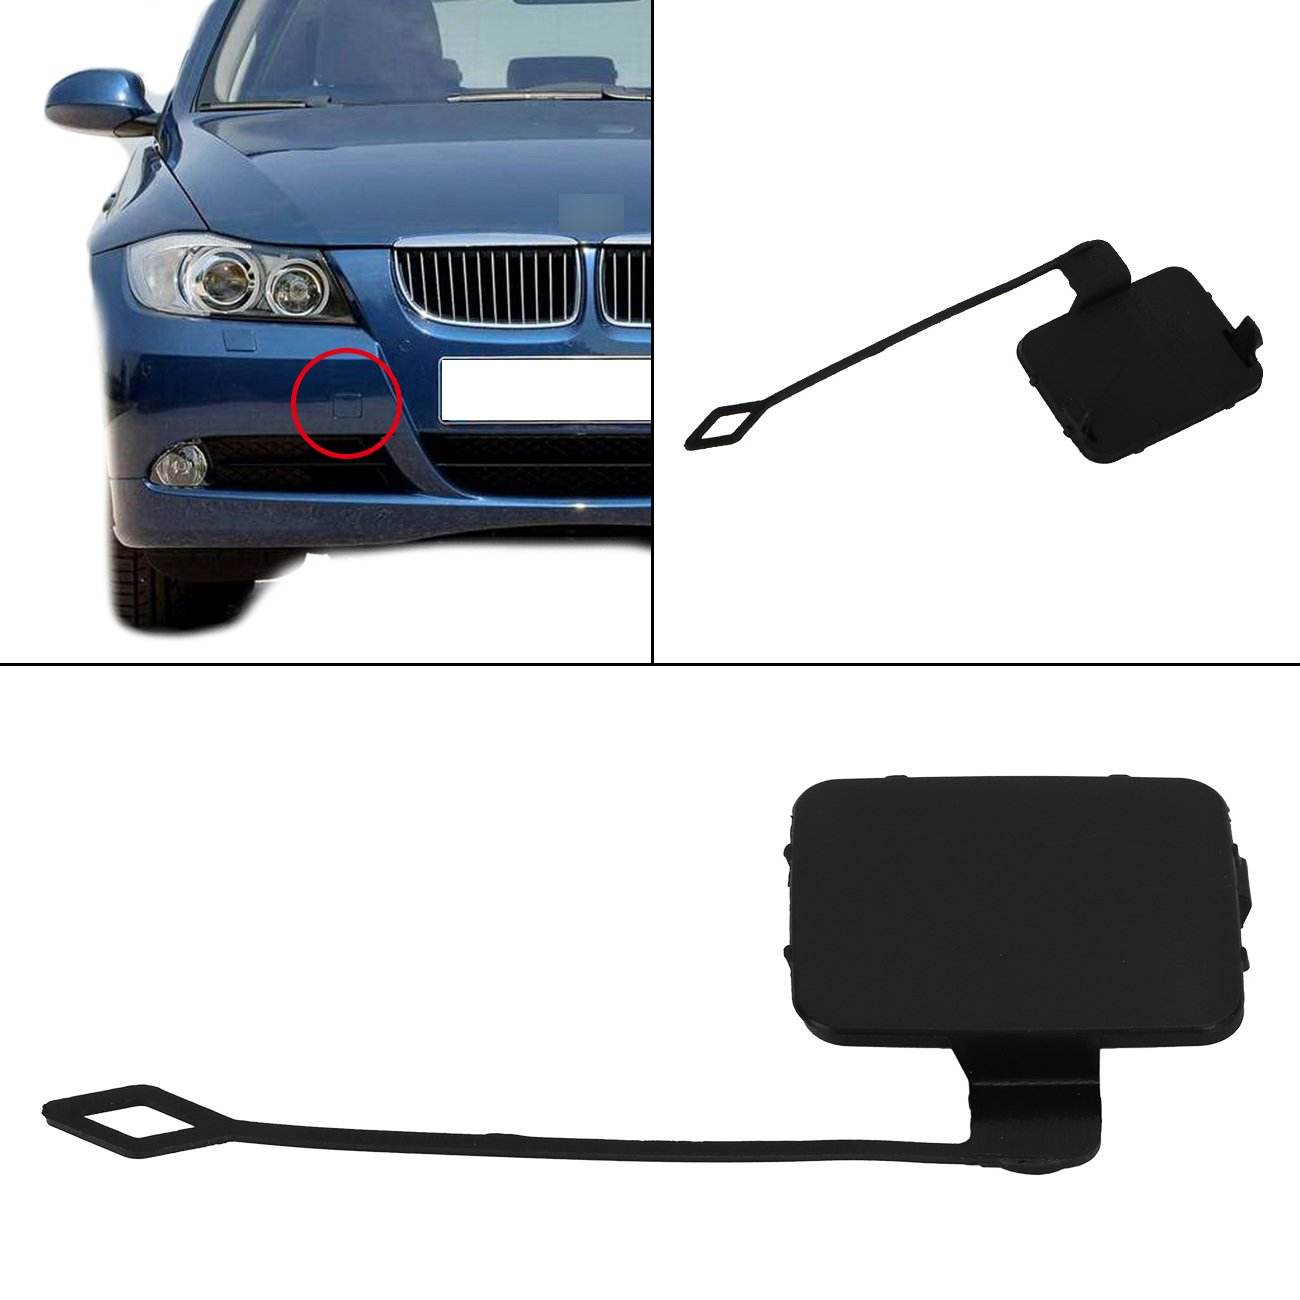 aochuang Front Bumper Tow Hook Cover Cap For E90 E91 2005-2008 318i 320i 328i 330i 335i Part number : 51117167575